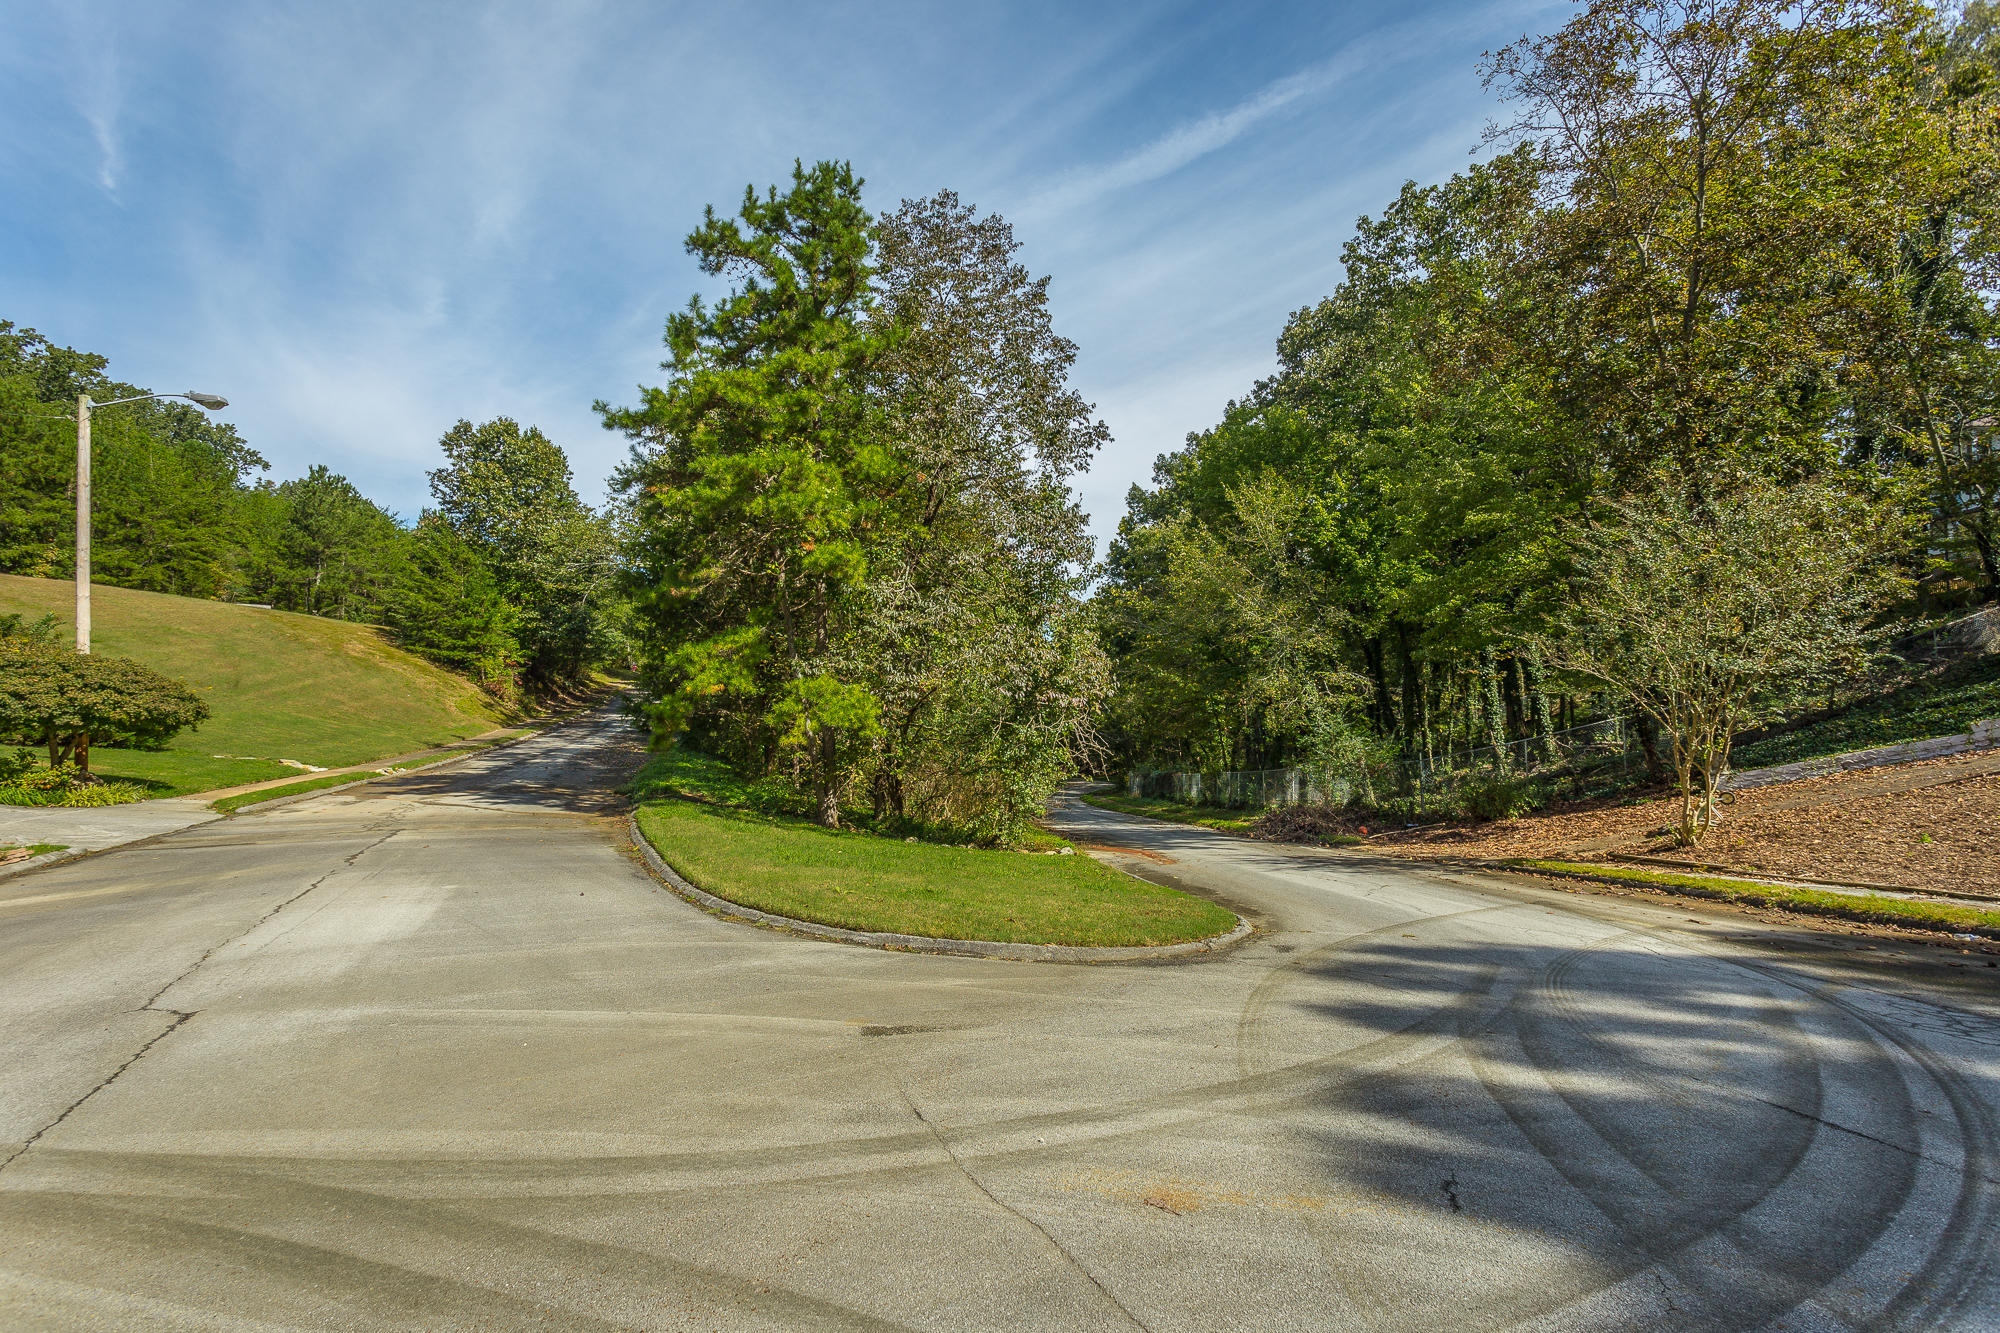 Lot 117 Buckingham Dr 117, Chattanooga, TN 37421